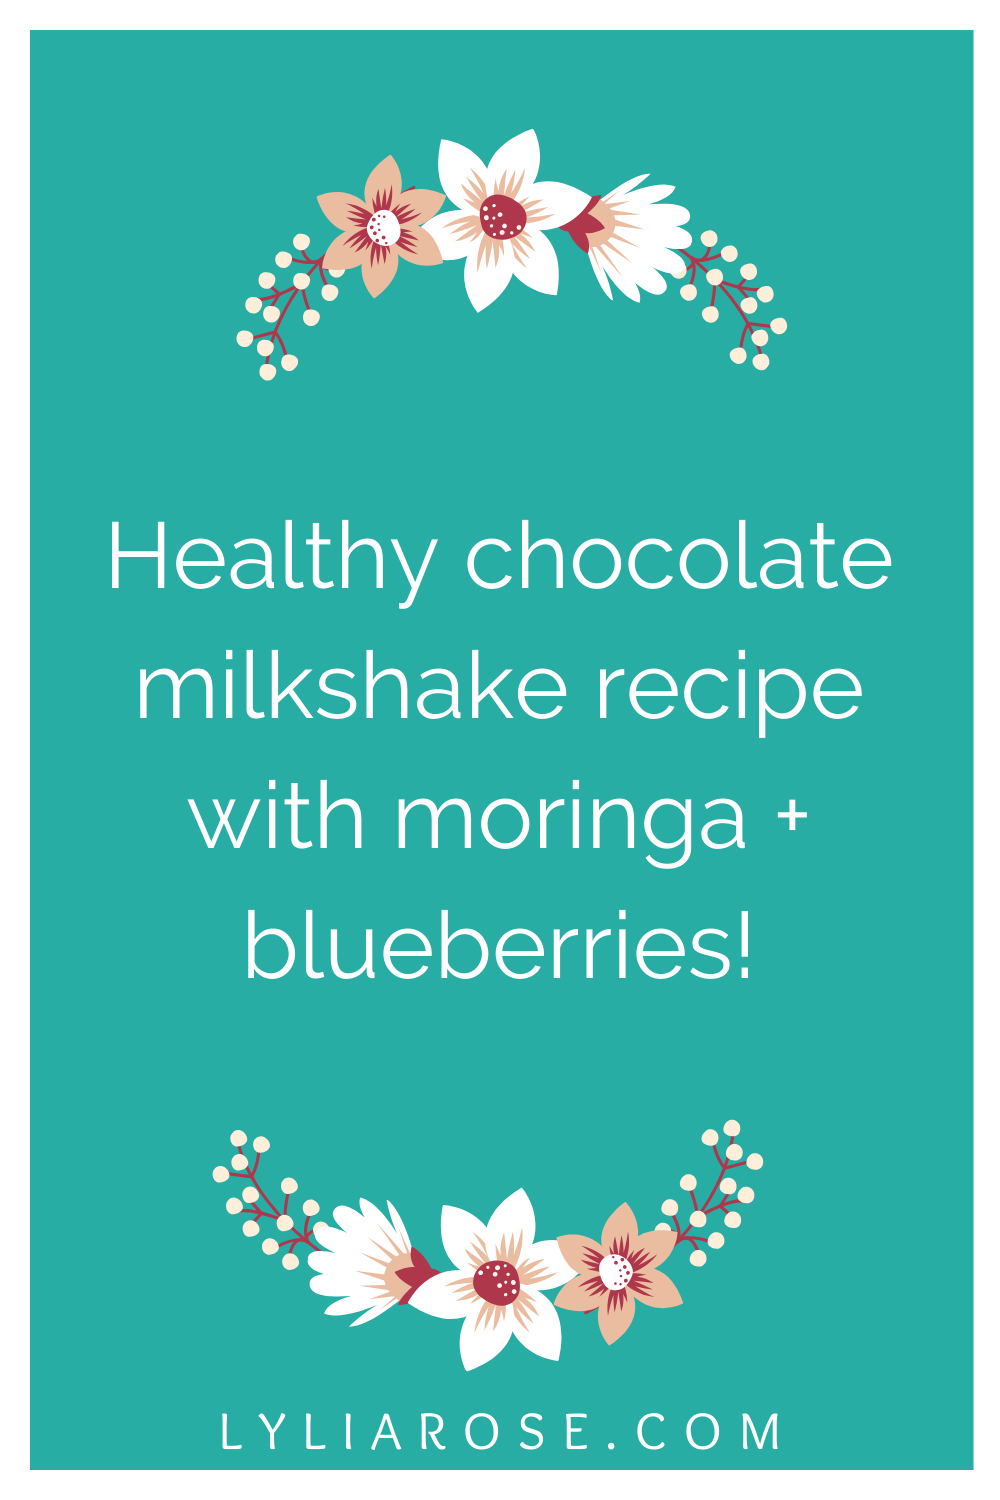 Healthy chocolate milkshake recipe with moringa + blueberries!